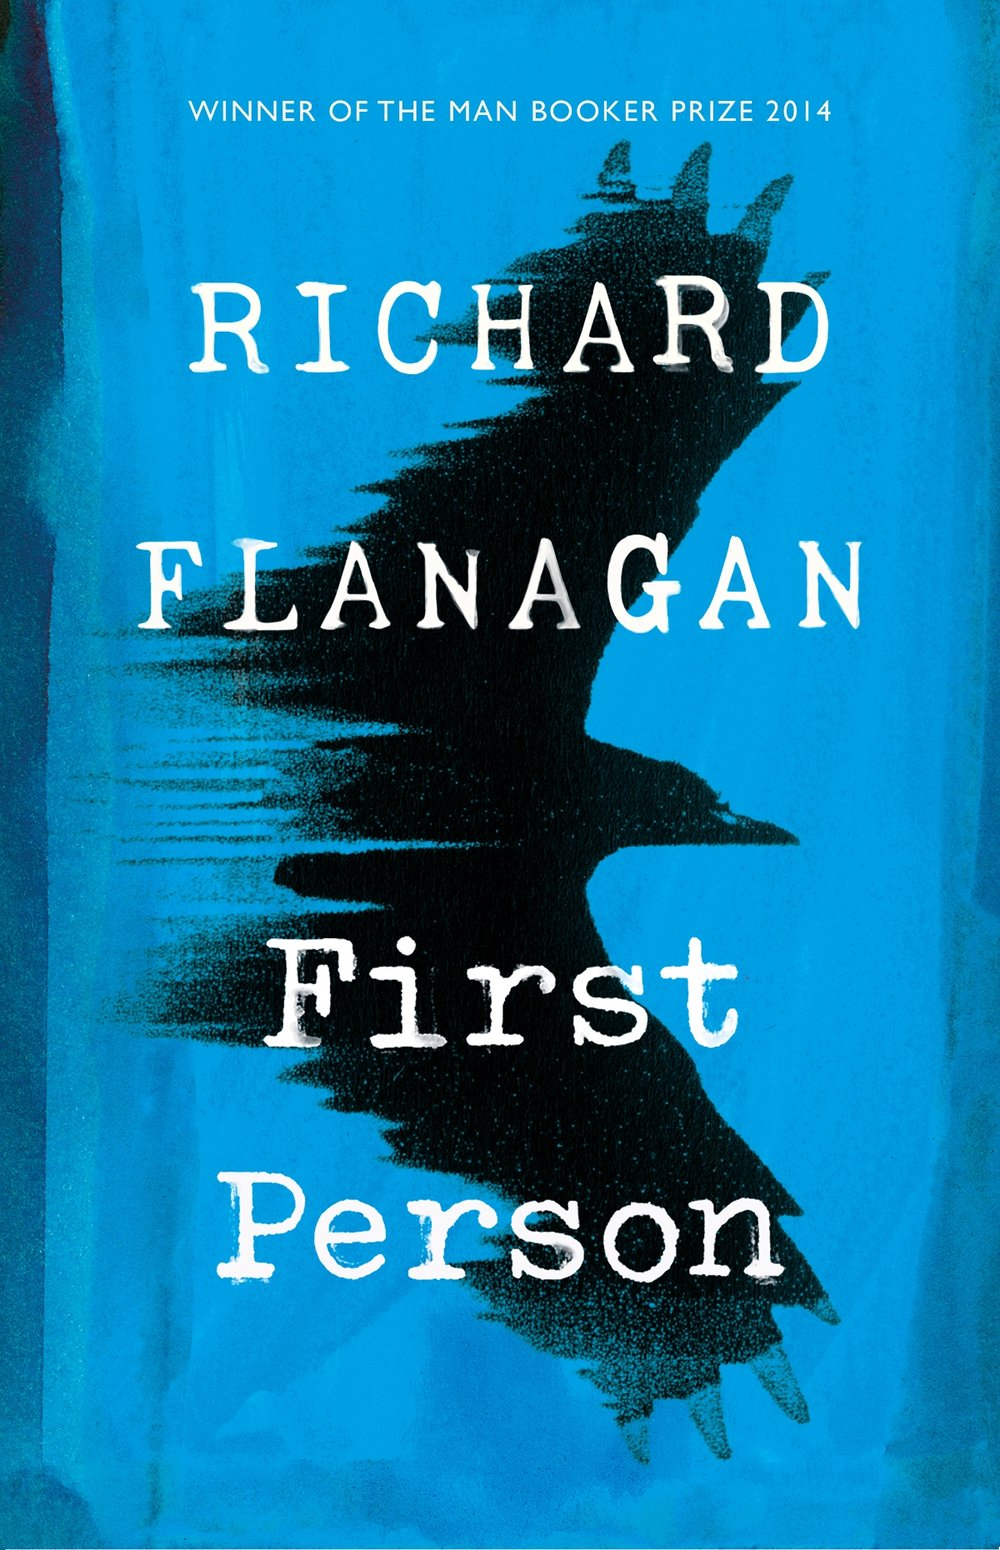 first person by richard flanagan - A young and penniless writer, Kif Kehlmann, is rung in the middle of the night by the notorious con man and corporate criminal, Siegfried Heidl. About to go to trial for defrauding the banks of $700 million, Heidl proposes a deal- $10,000 for Kehlmann to ghost write his memoir in six weeks.But as the writing gets under way, Kehlmann begins to fear that he is being corrupted by Heidl. As the deadline draws closer, he becomes ever more unsure if he is ghost writing a memoir, or if Heidl is rewriting him-his life, his future. Everything that was certain grows uncertain as he begins to wonder- who is Siegfried Heidl-and who is Kif Kehlmann?By turns compelling, comic, and chilling,First Personis a haunting journey into the heart of our age.